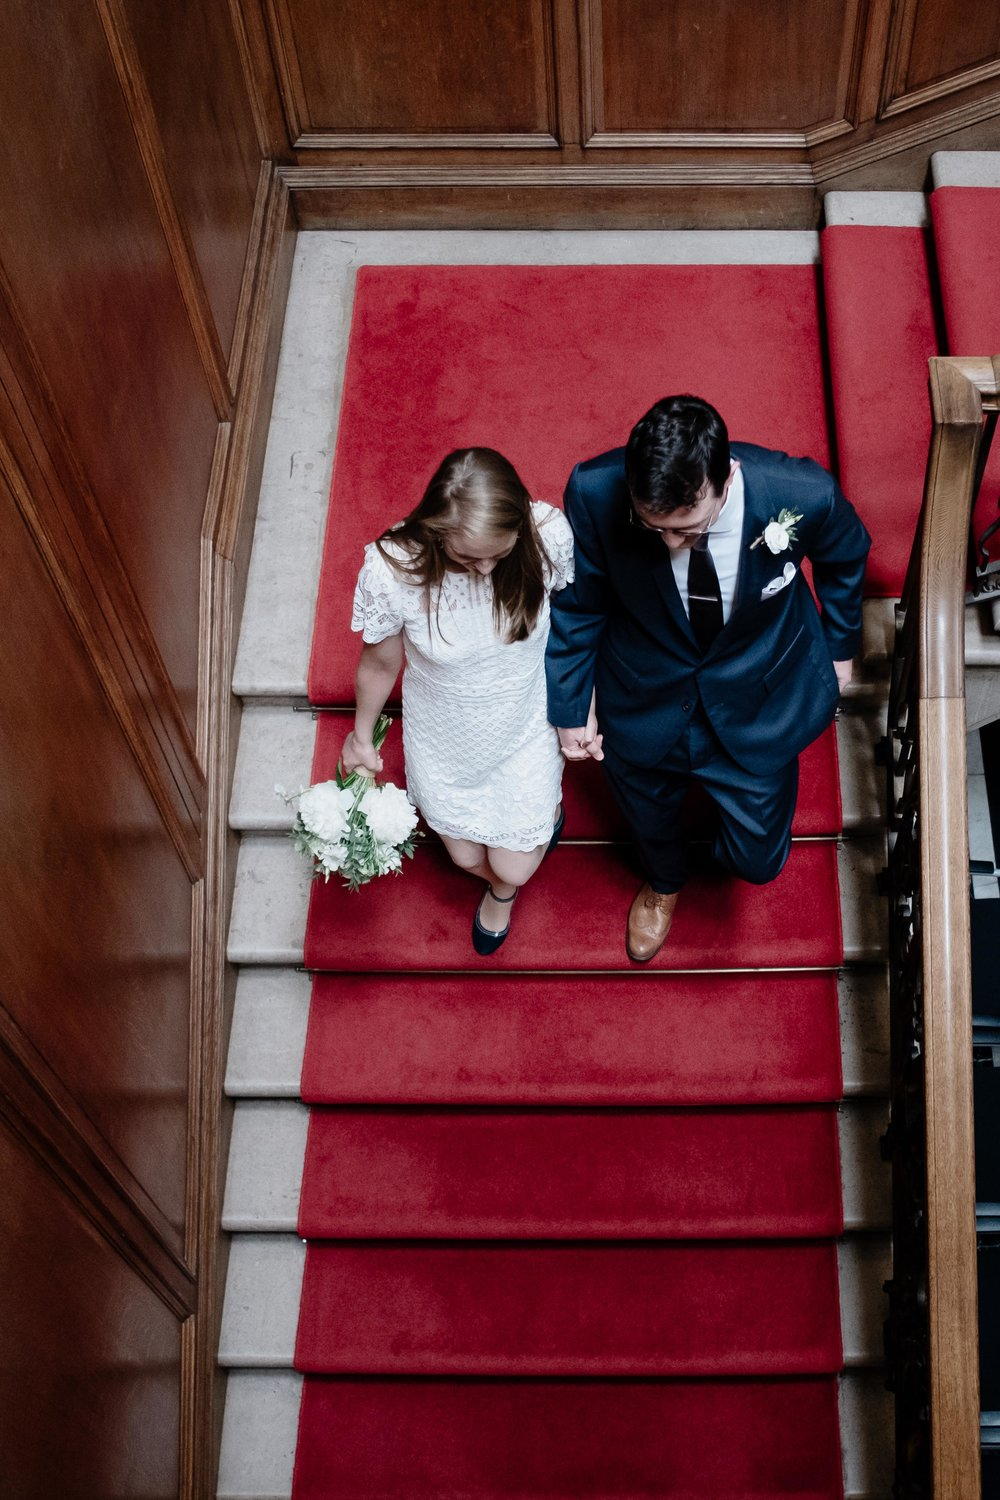 Couple have just eloped in Edinburgh and are walking down the stairs of the Edinburgh Registry Office.